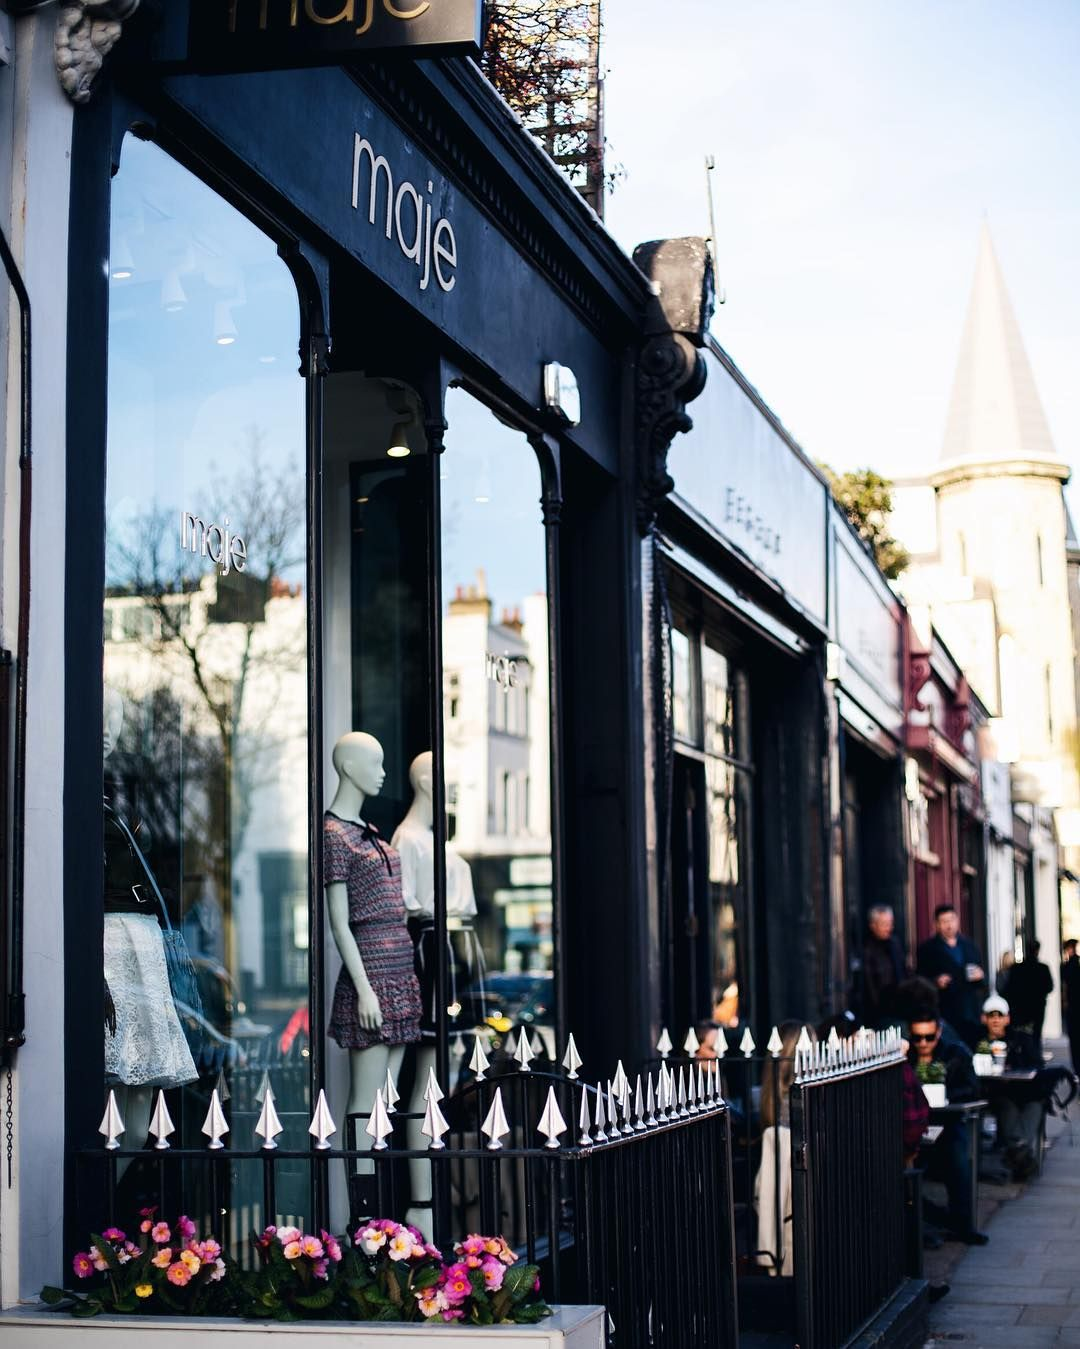 Fancy pants streets in Notting Hill  did you check out my city guide and favourite spots? #mediamarmalade